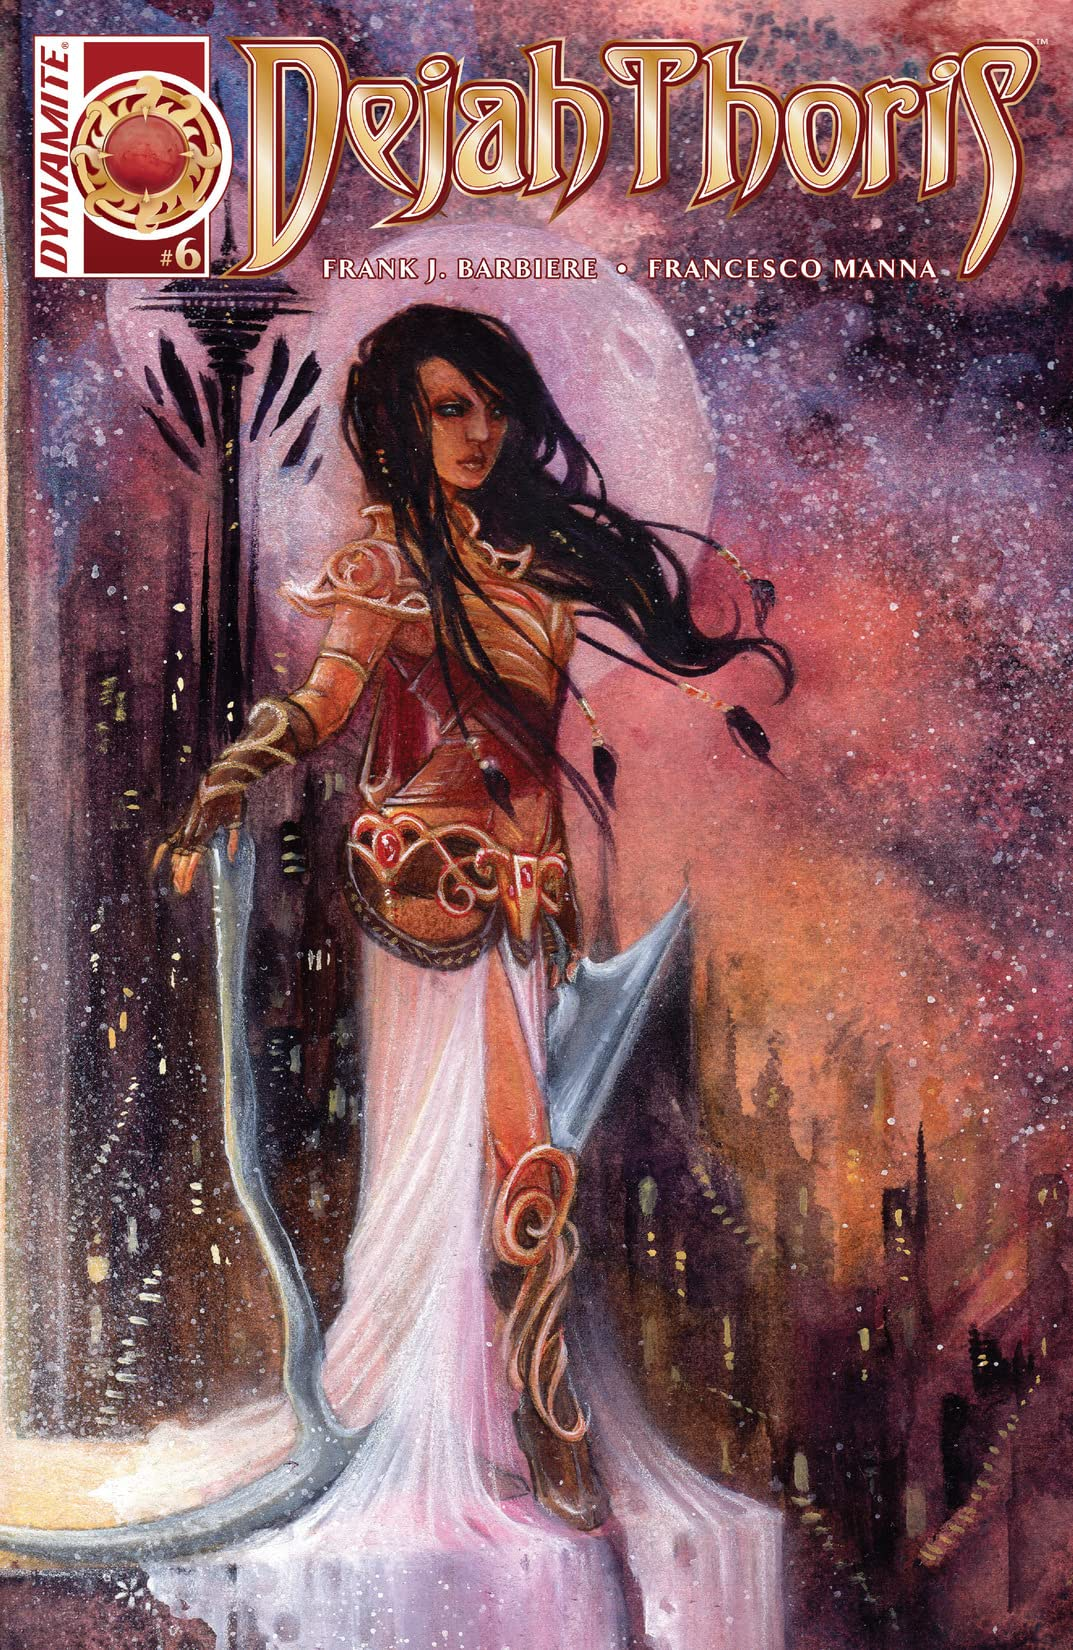 Dejah Thoris #6: Digital Exclusive Edition